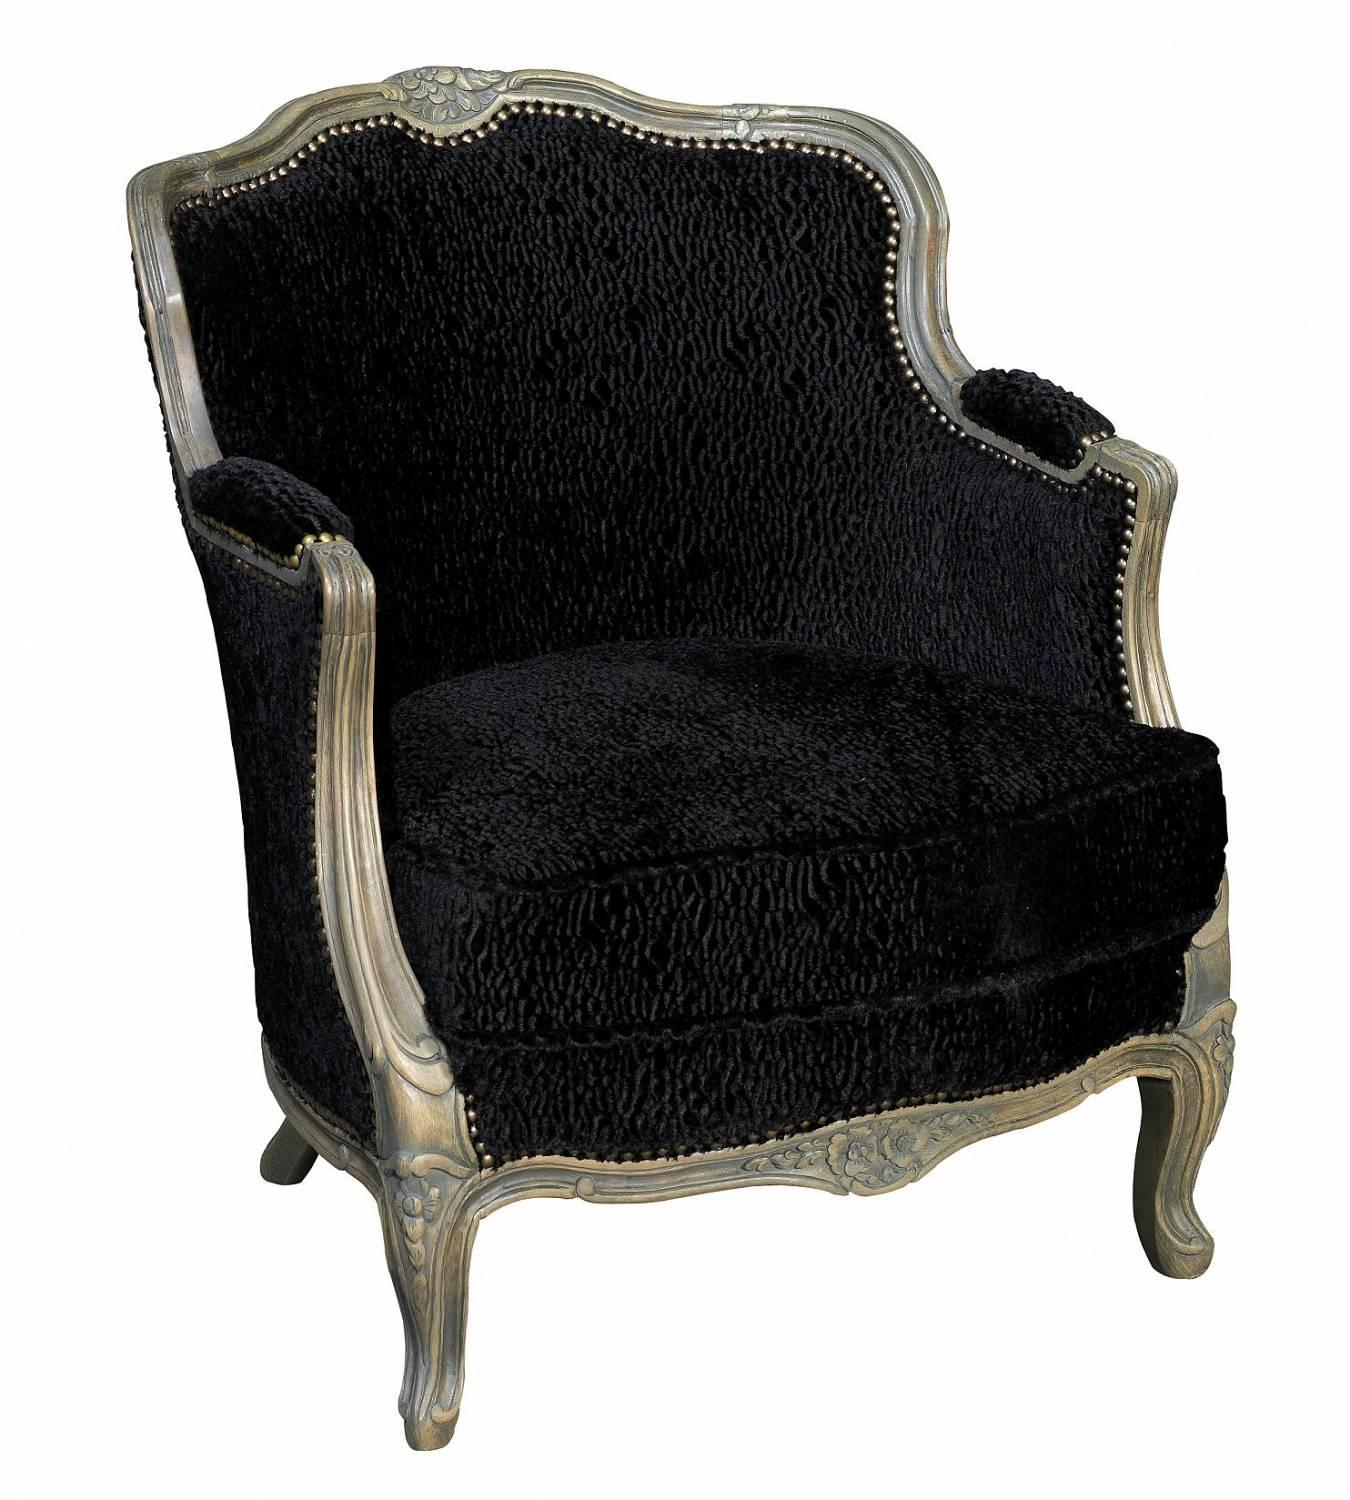 louis bergere chair. Black Bedroom Furniture Sets. Home Design Ideas